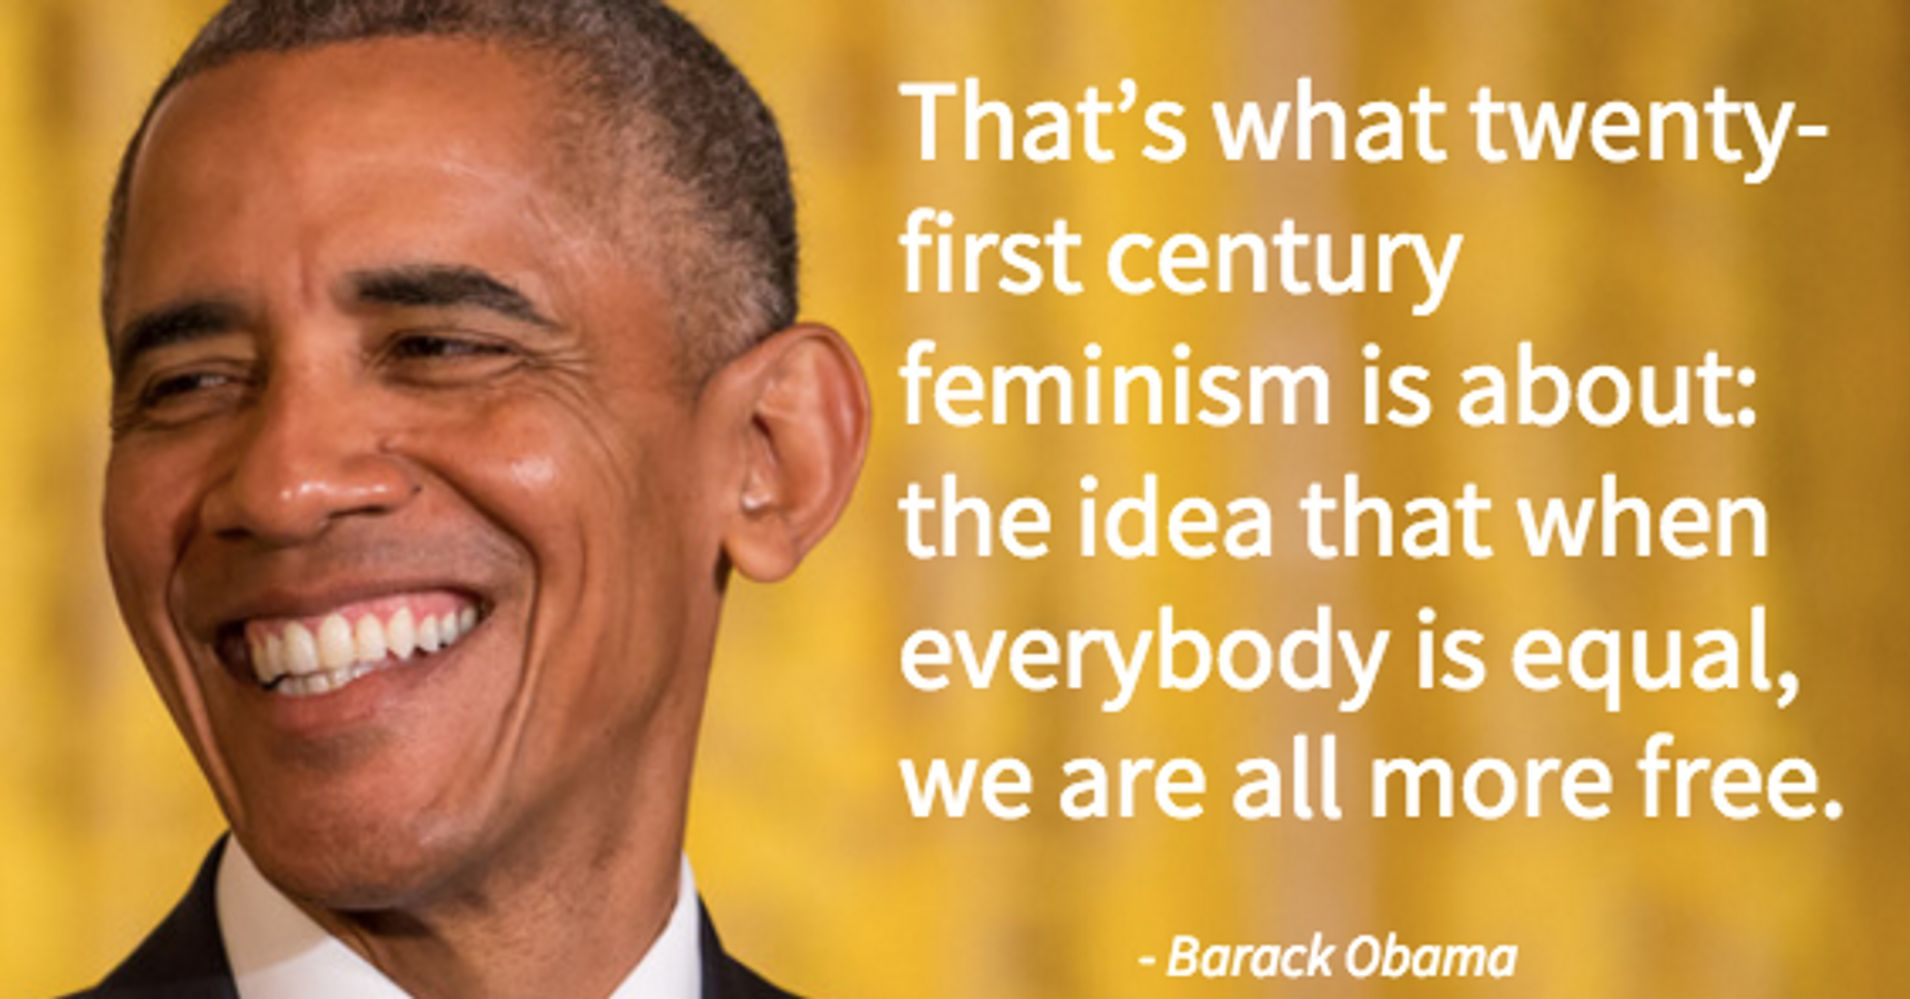 Essays On Science Barack Obama Wrote An Essay About Feminism Every Man Needs To Read   Huffpost A Modest Proposal Ideas For Essays also Buy Essay Papers Online Barack Obama Wrote An Essay About Feminism Every Man Needs To Read  English Extended Essay Topics